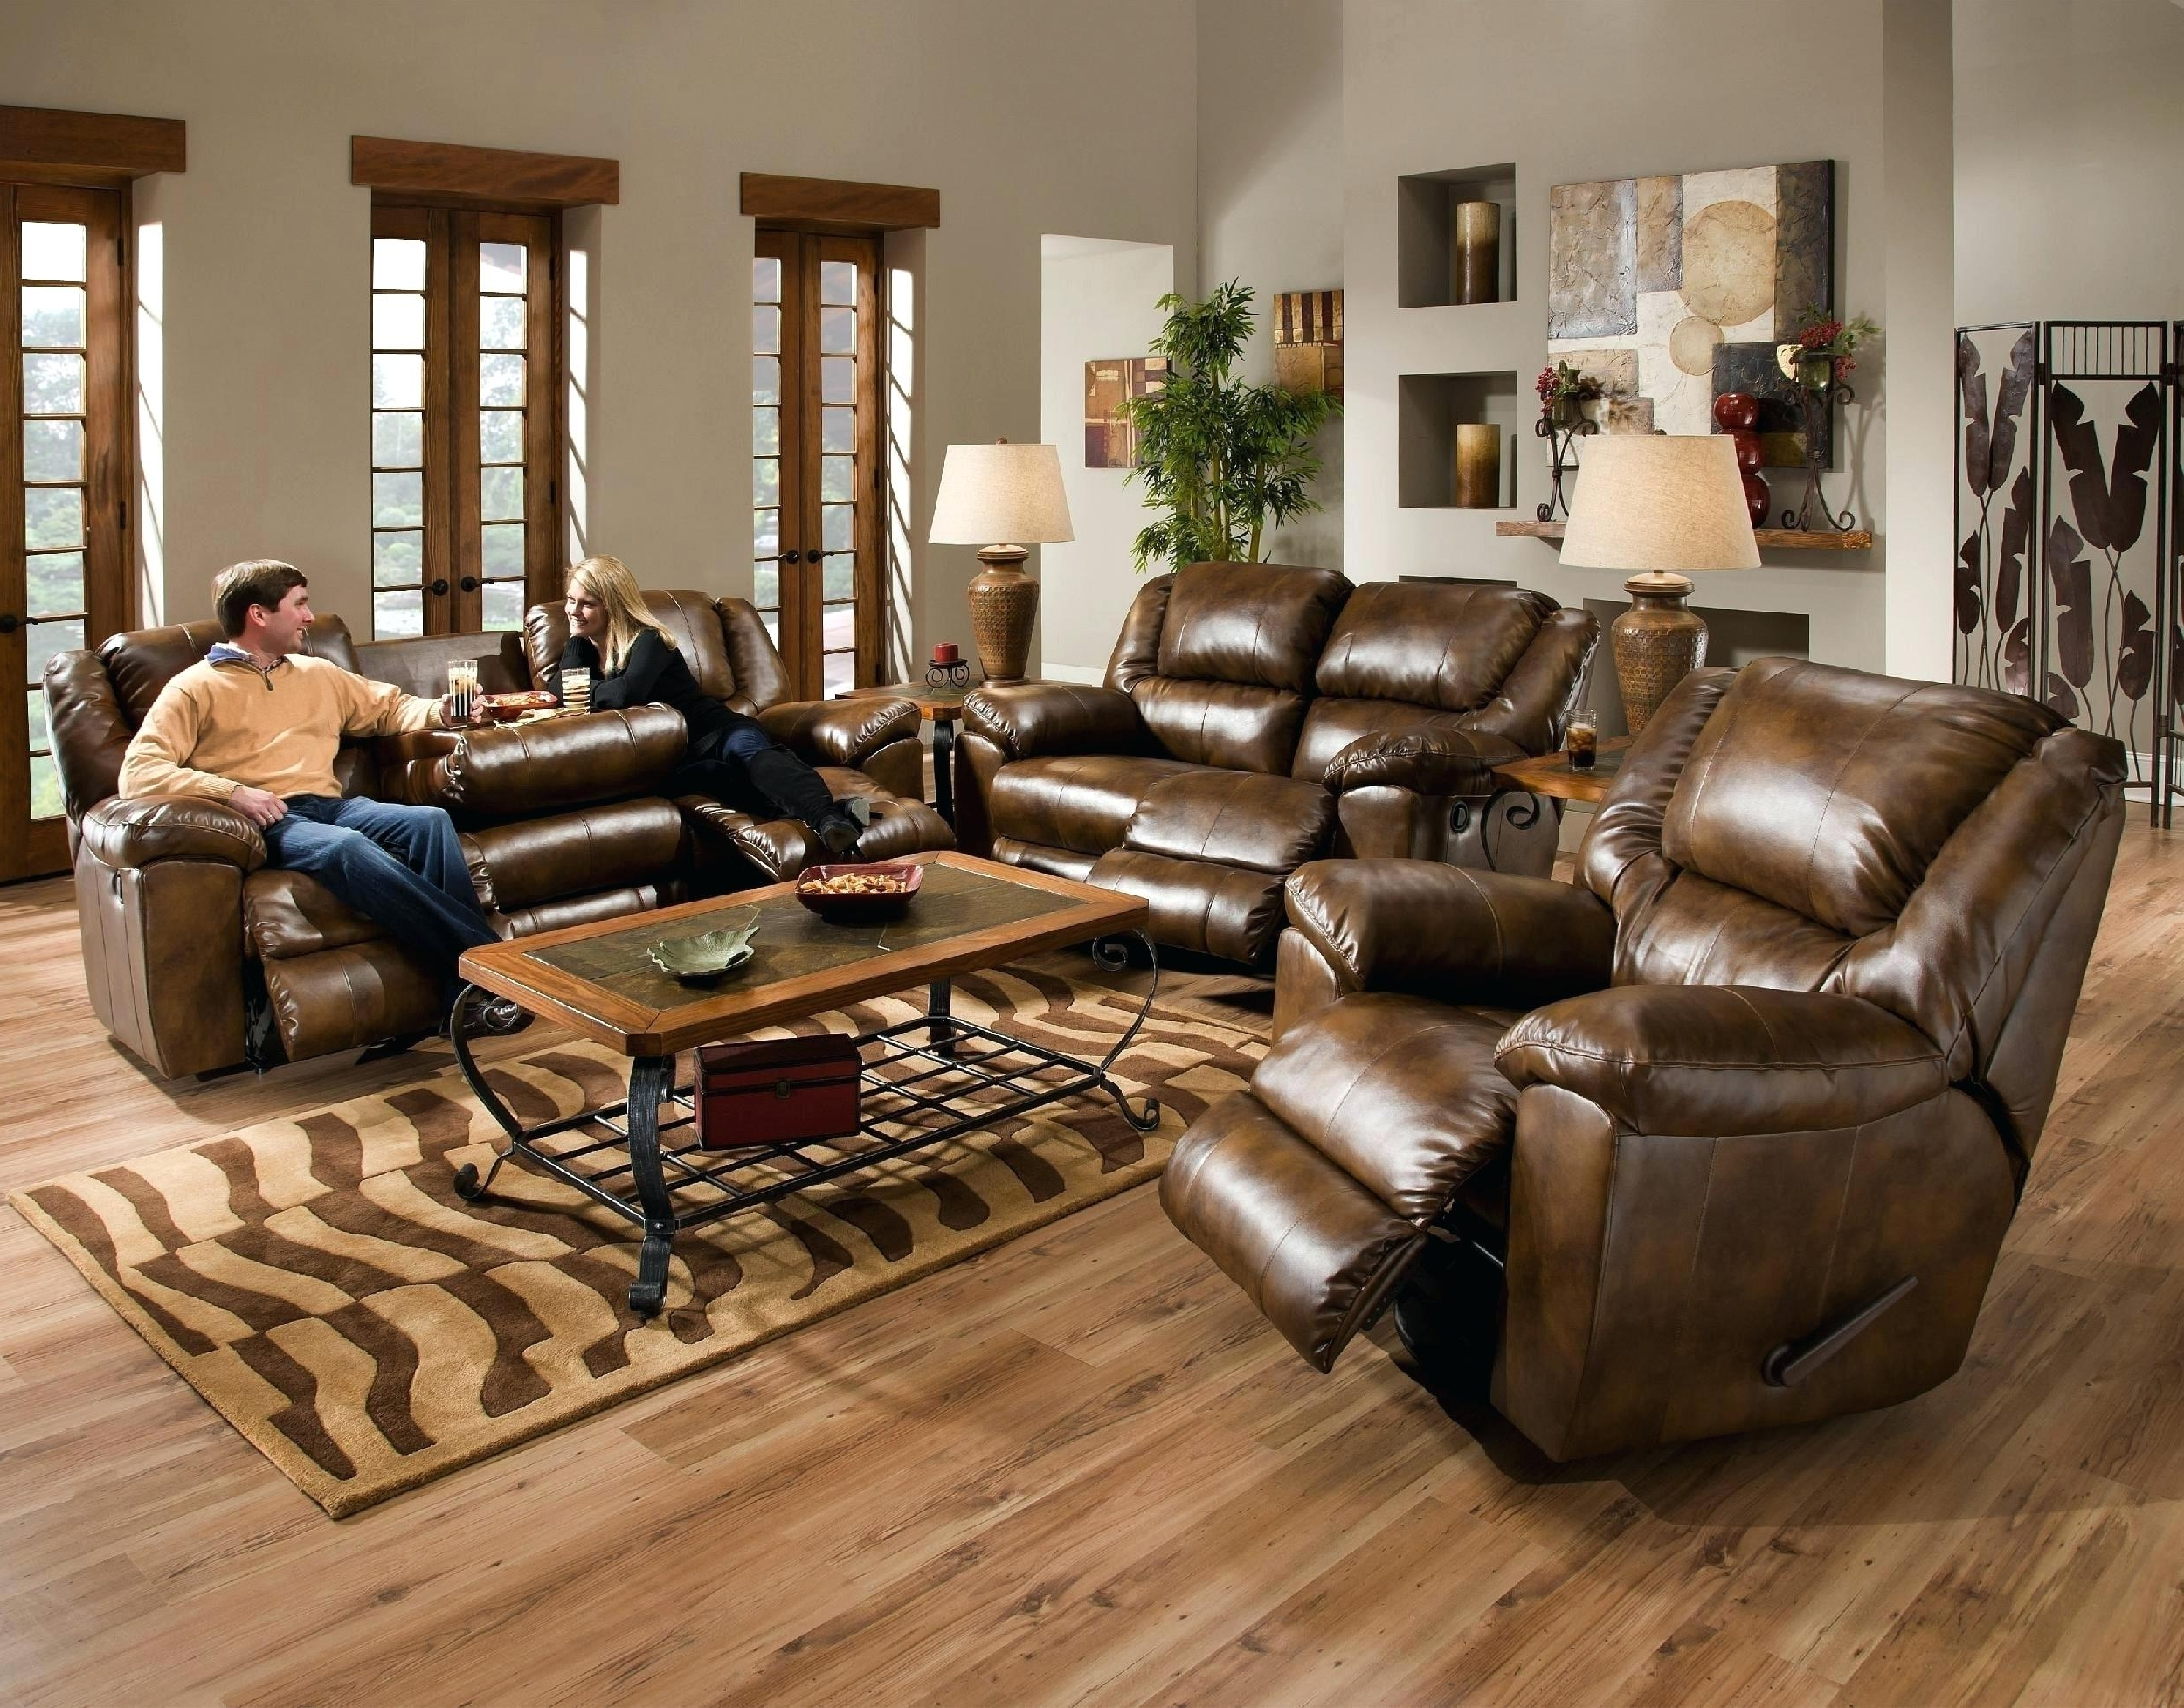 Furniture : Sectional Sofa 120 Sectional Couch Guelph Recliner 3 With Widely Used 110X110 Sectional Sofas (View 12 of 15)